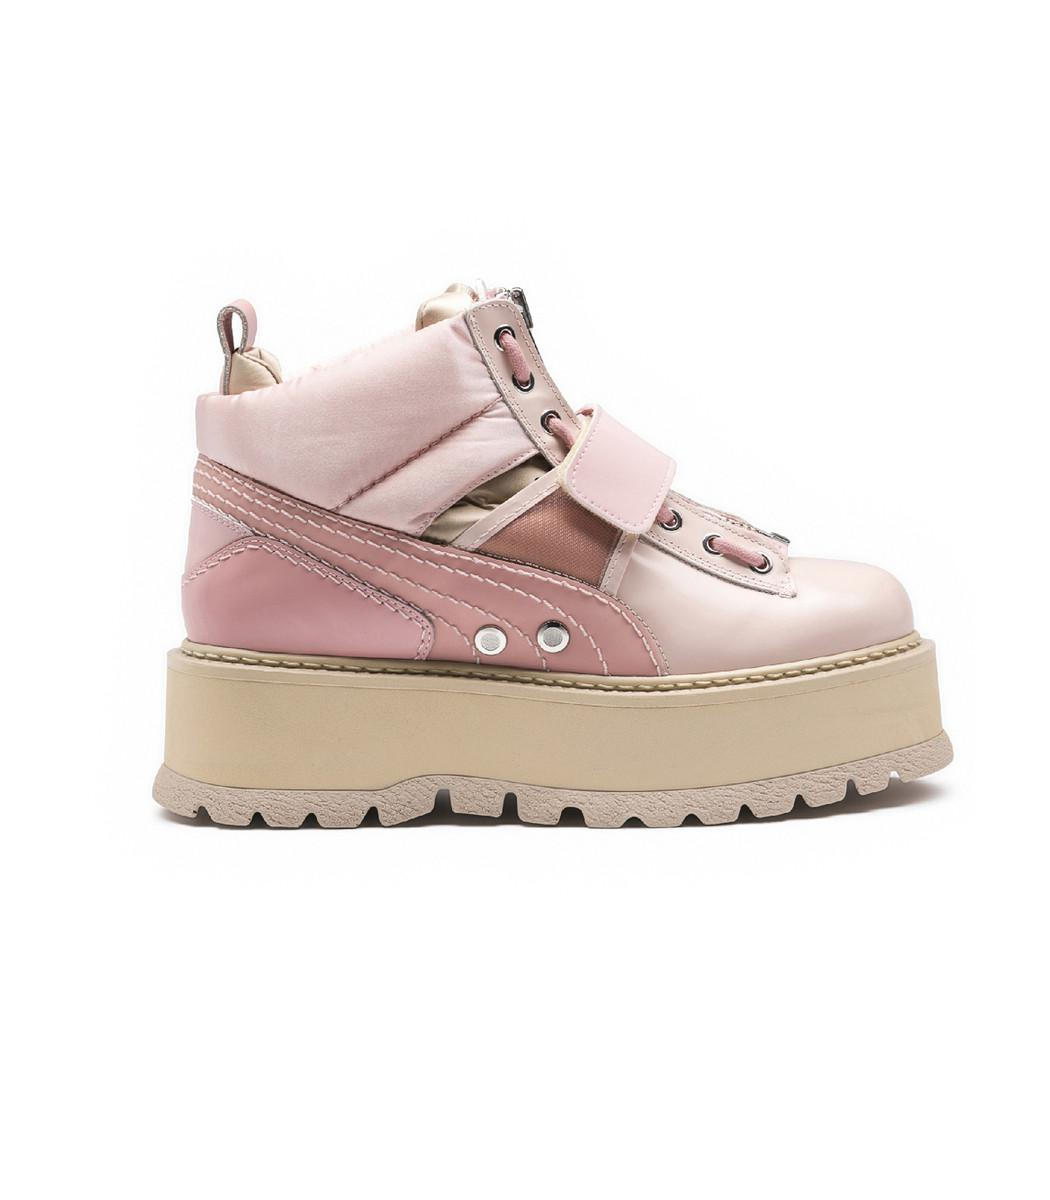 reputable site 924a5 48b93 Women's Pink 'fenty X By Rihanna' Sneaker Boots